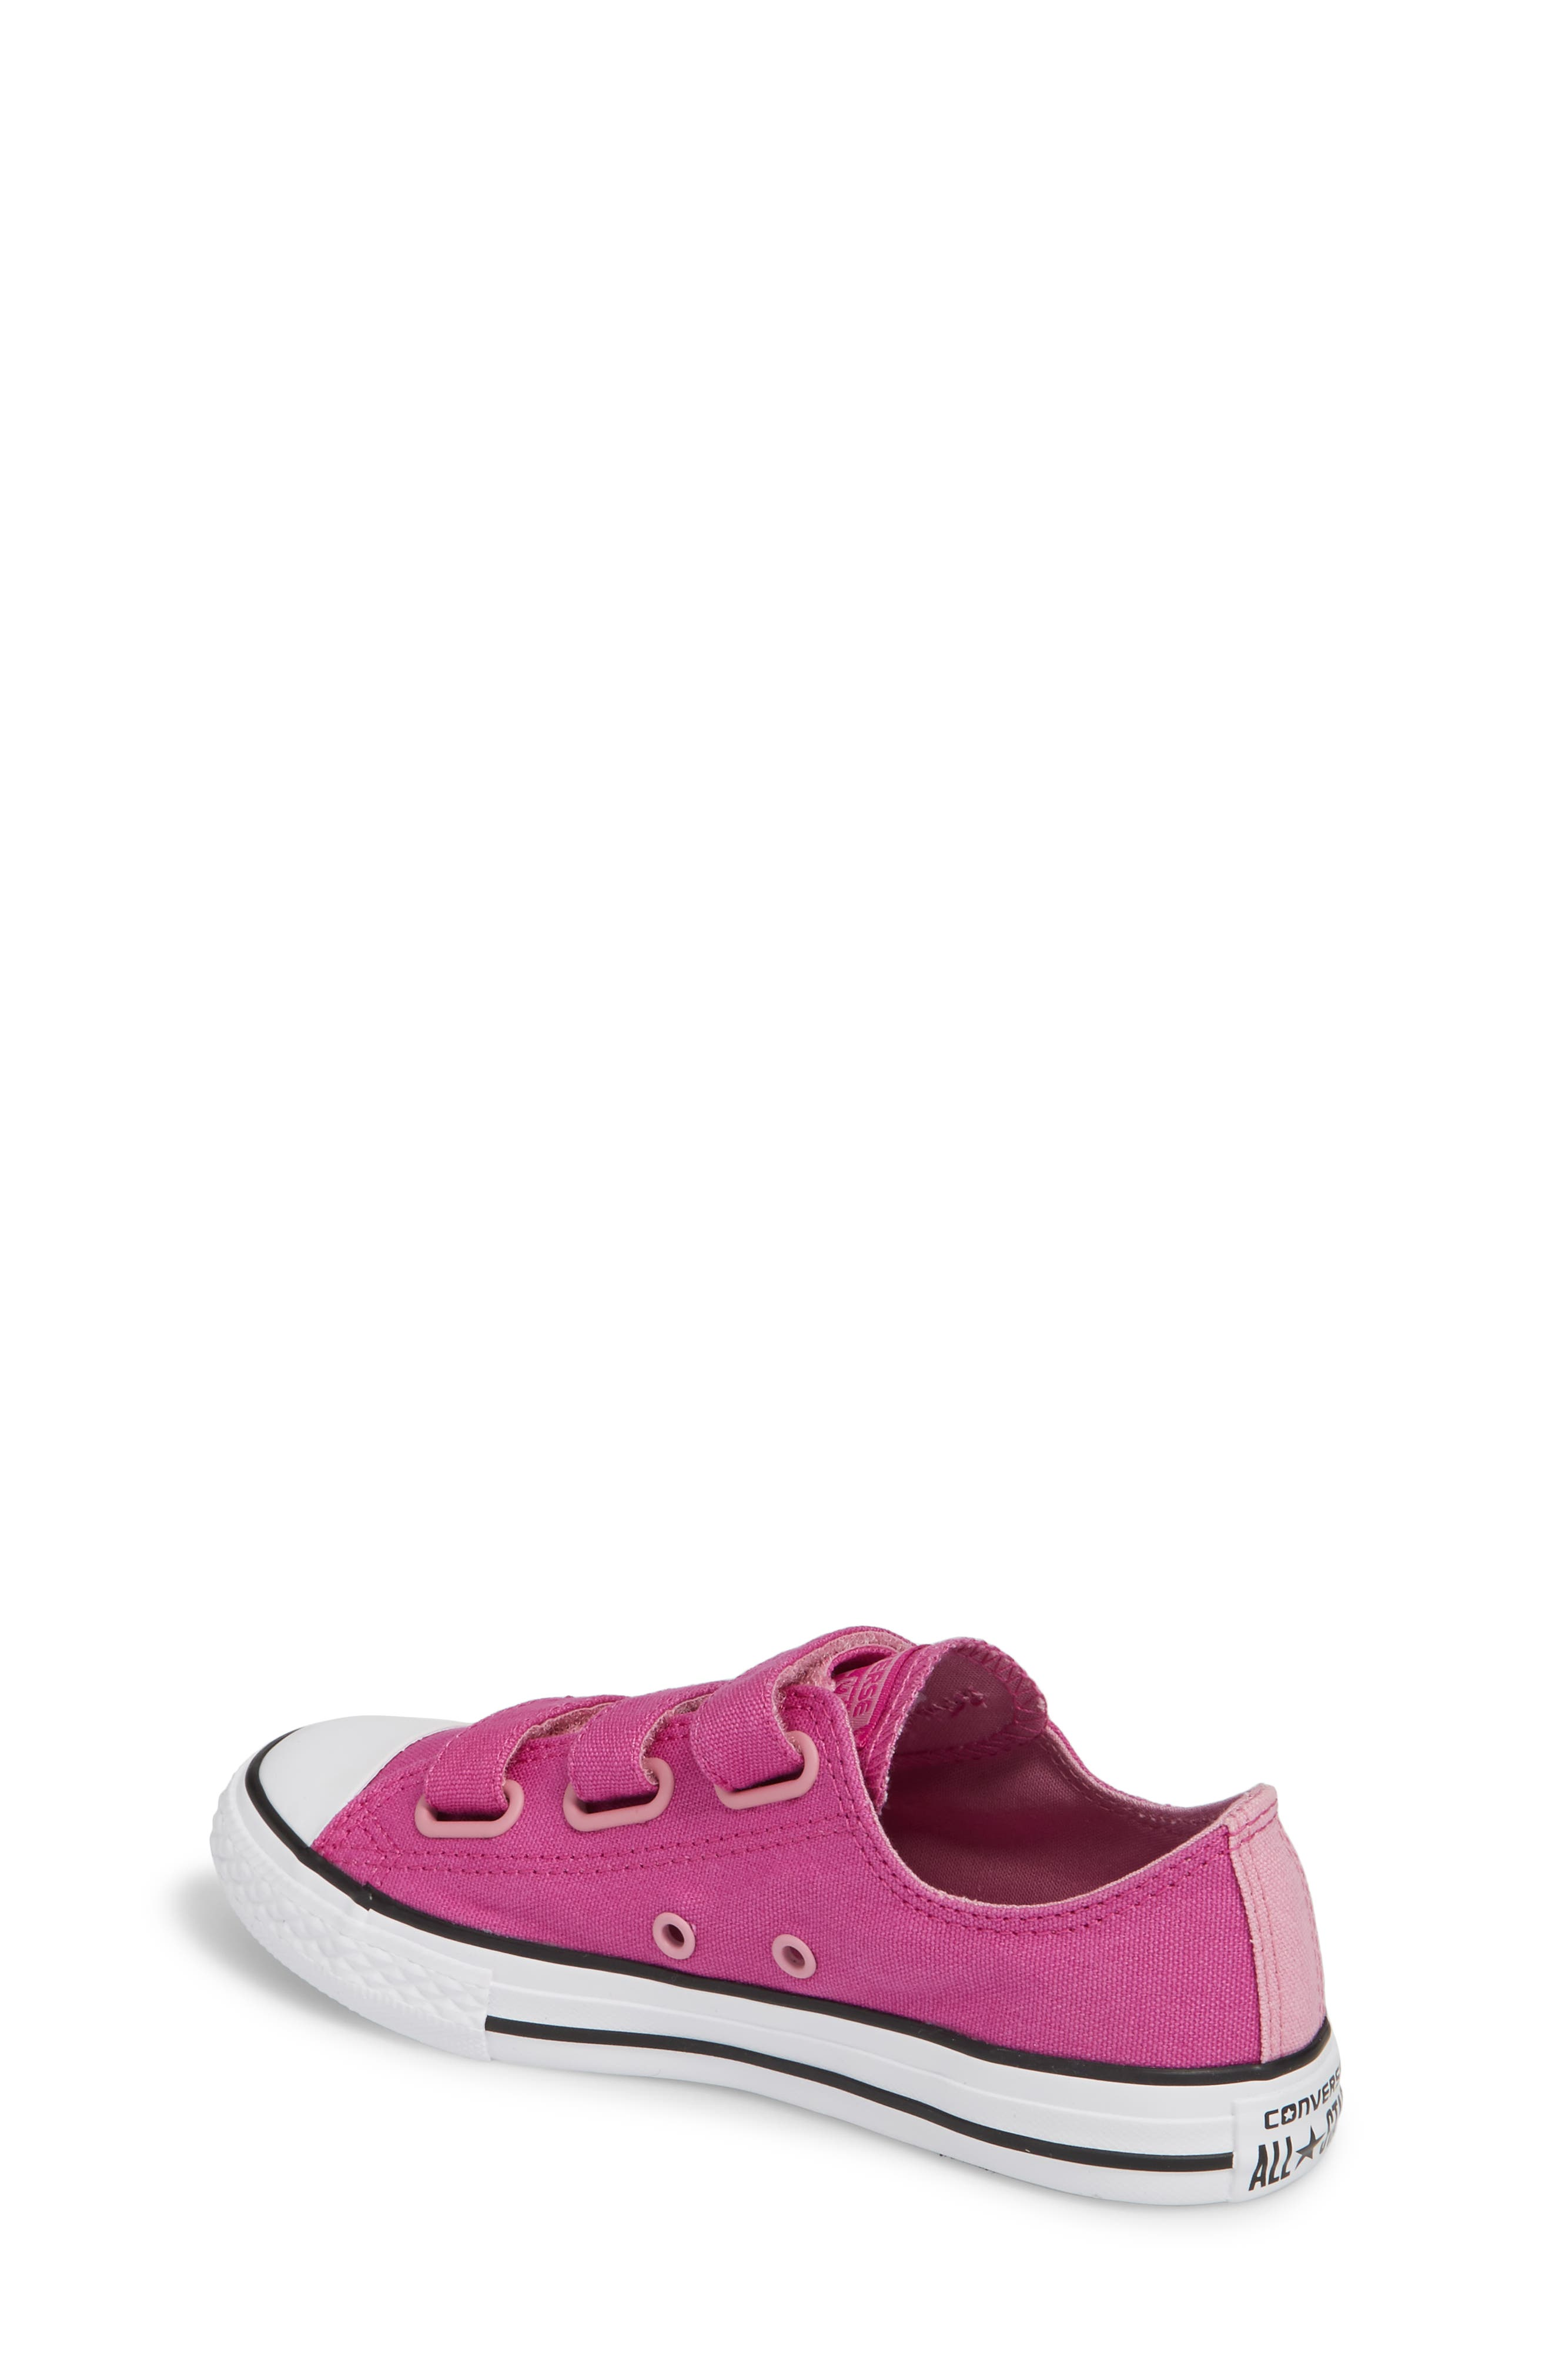 Chuck Taylor<sup>®</sup> All Star<sup>®</sup> 3V Low Top Sneaker,                             Alternate thumbnail 2, color,                             650